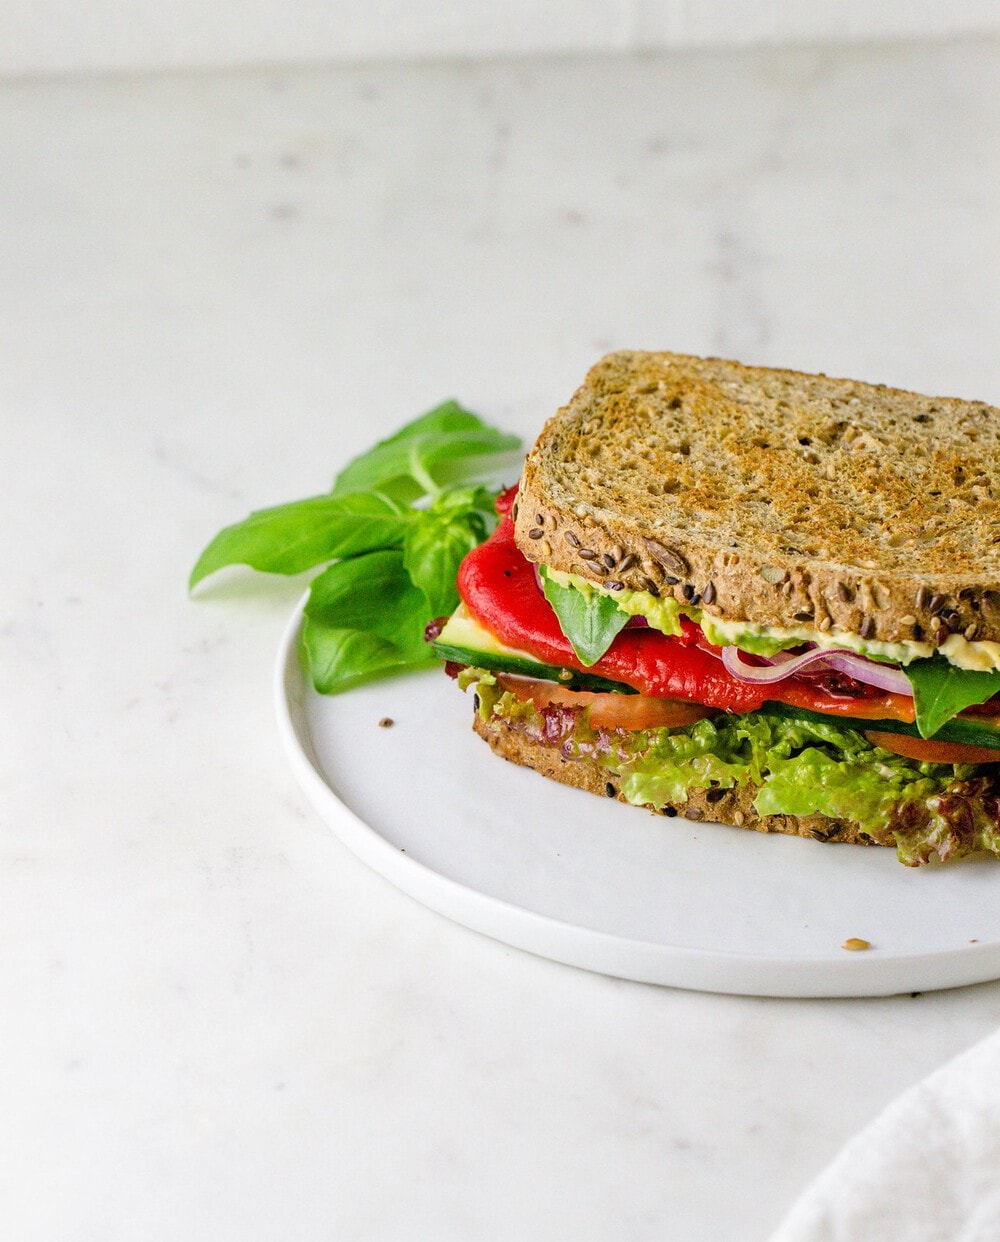 side angle view of roasted red pepper, hummus and avocado sandwich on a white plate.